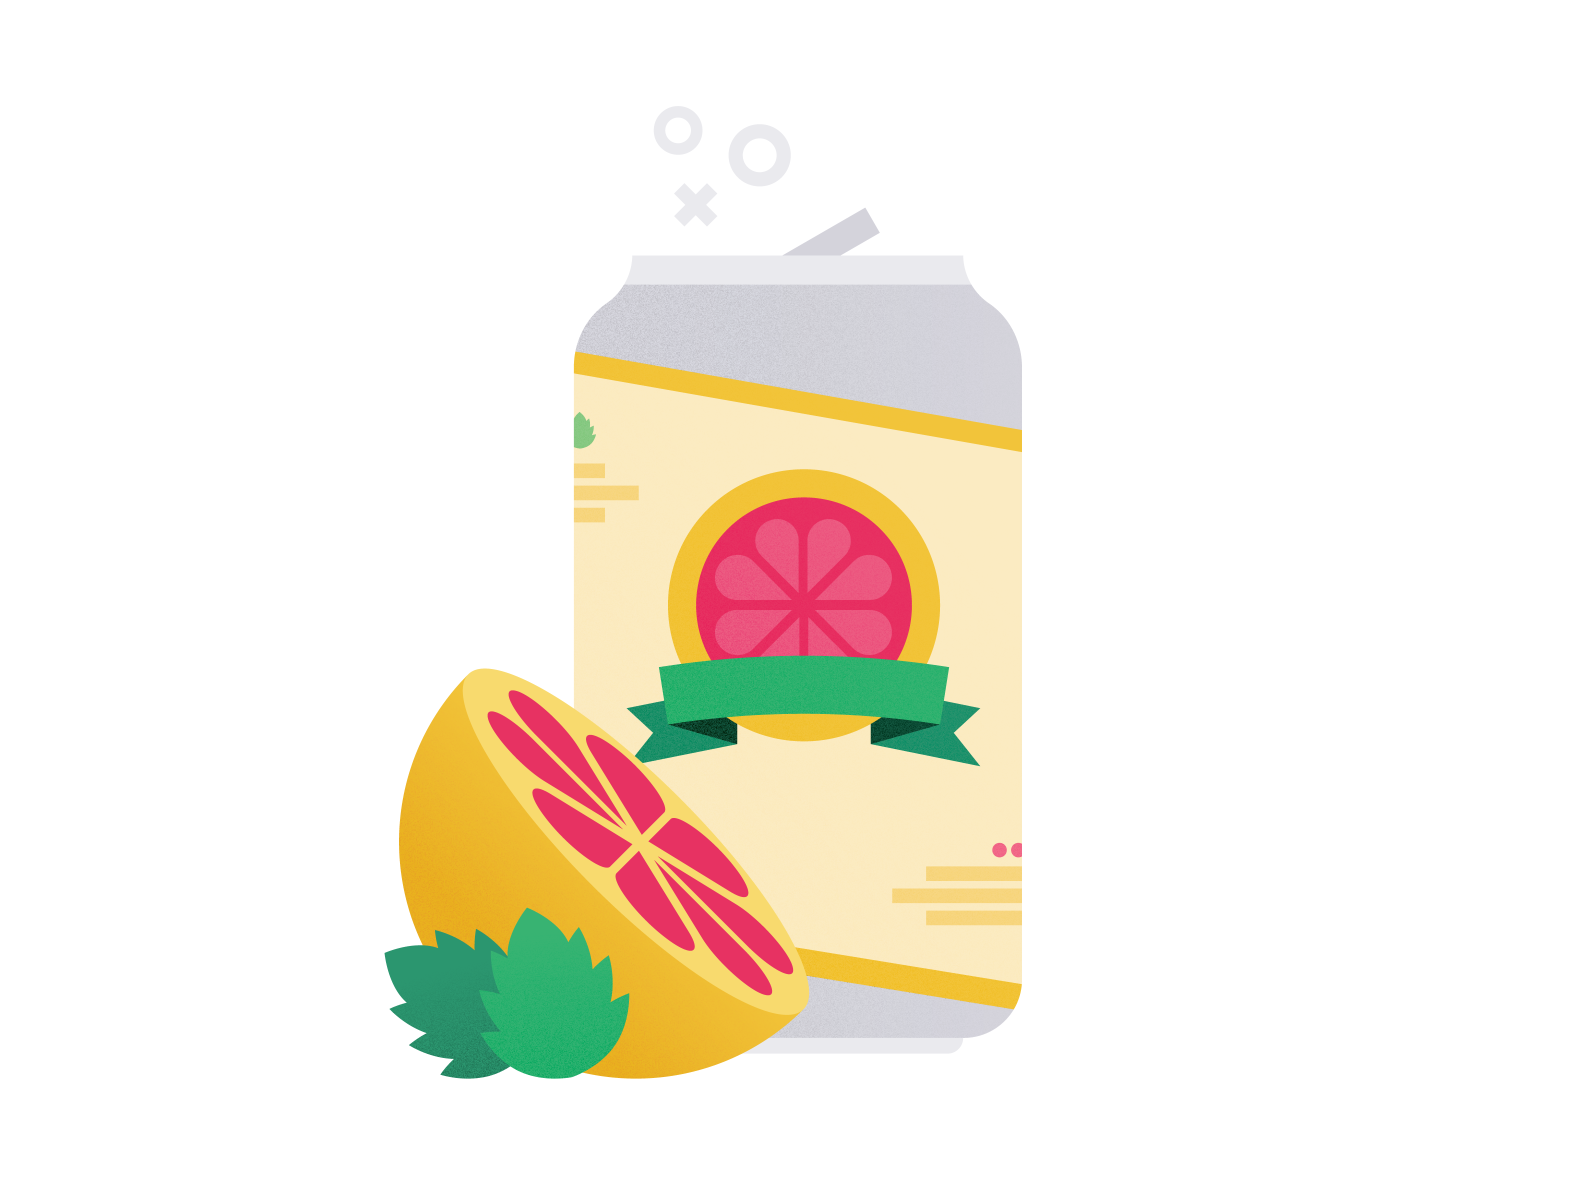 illustration of grapefruit cider can with sliced fruit and hops